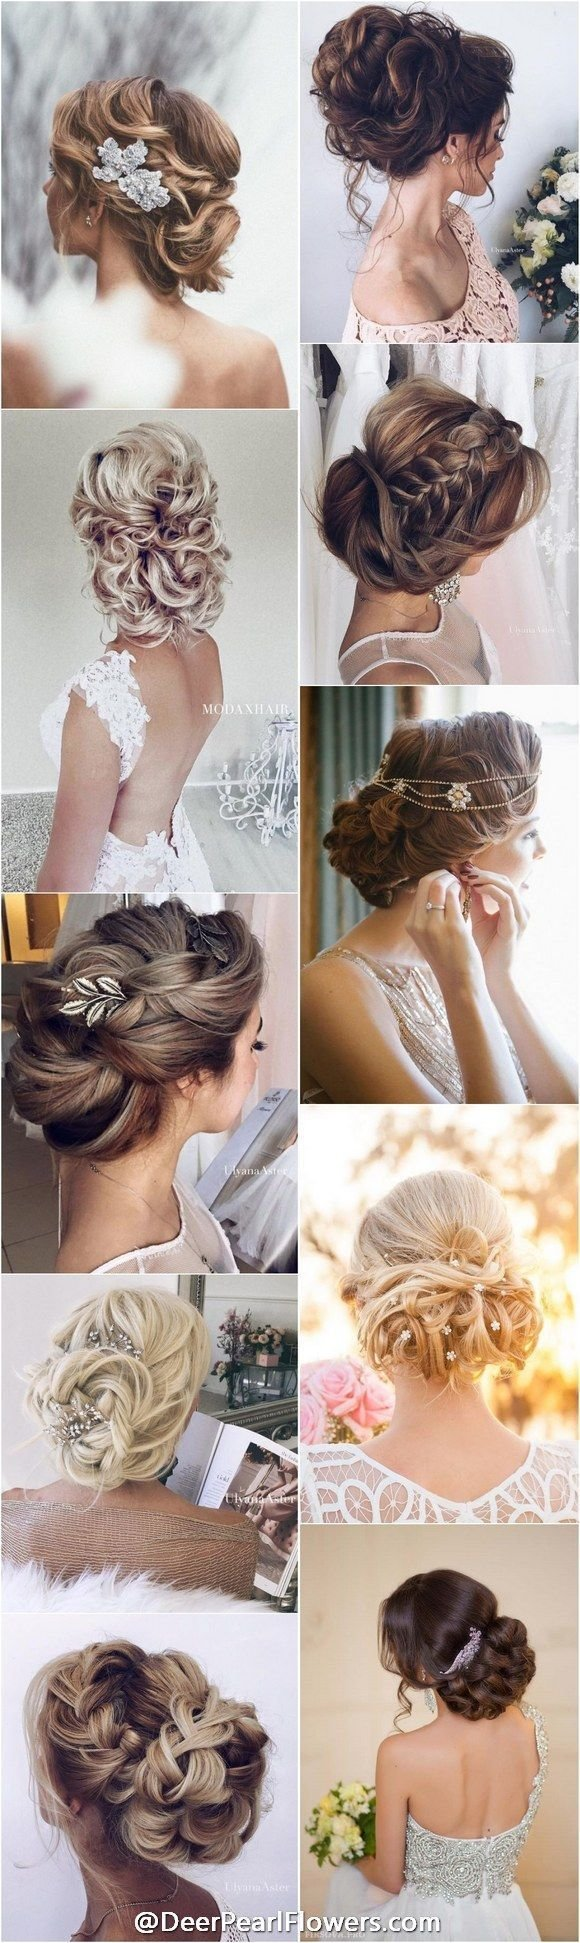 New Best 25 Country Wedding Hairstyles Ideas On Pinterest Ideas With Pictures Original 1024 x 768